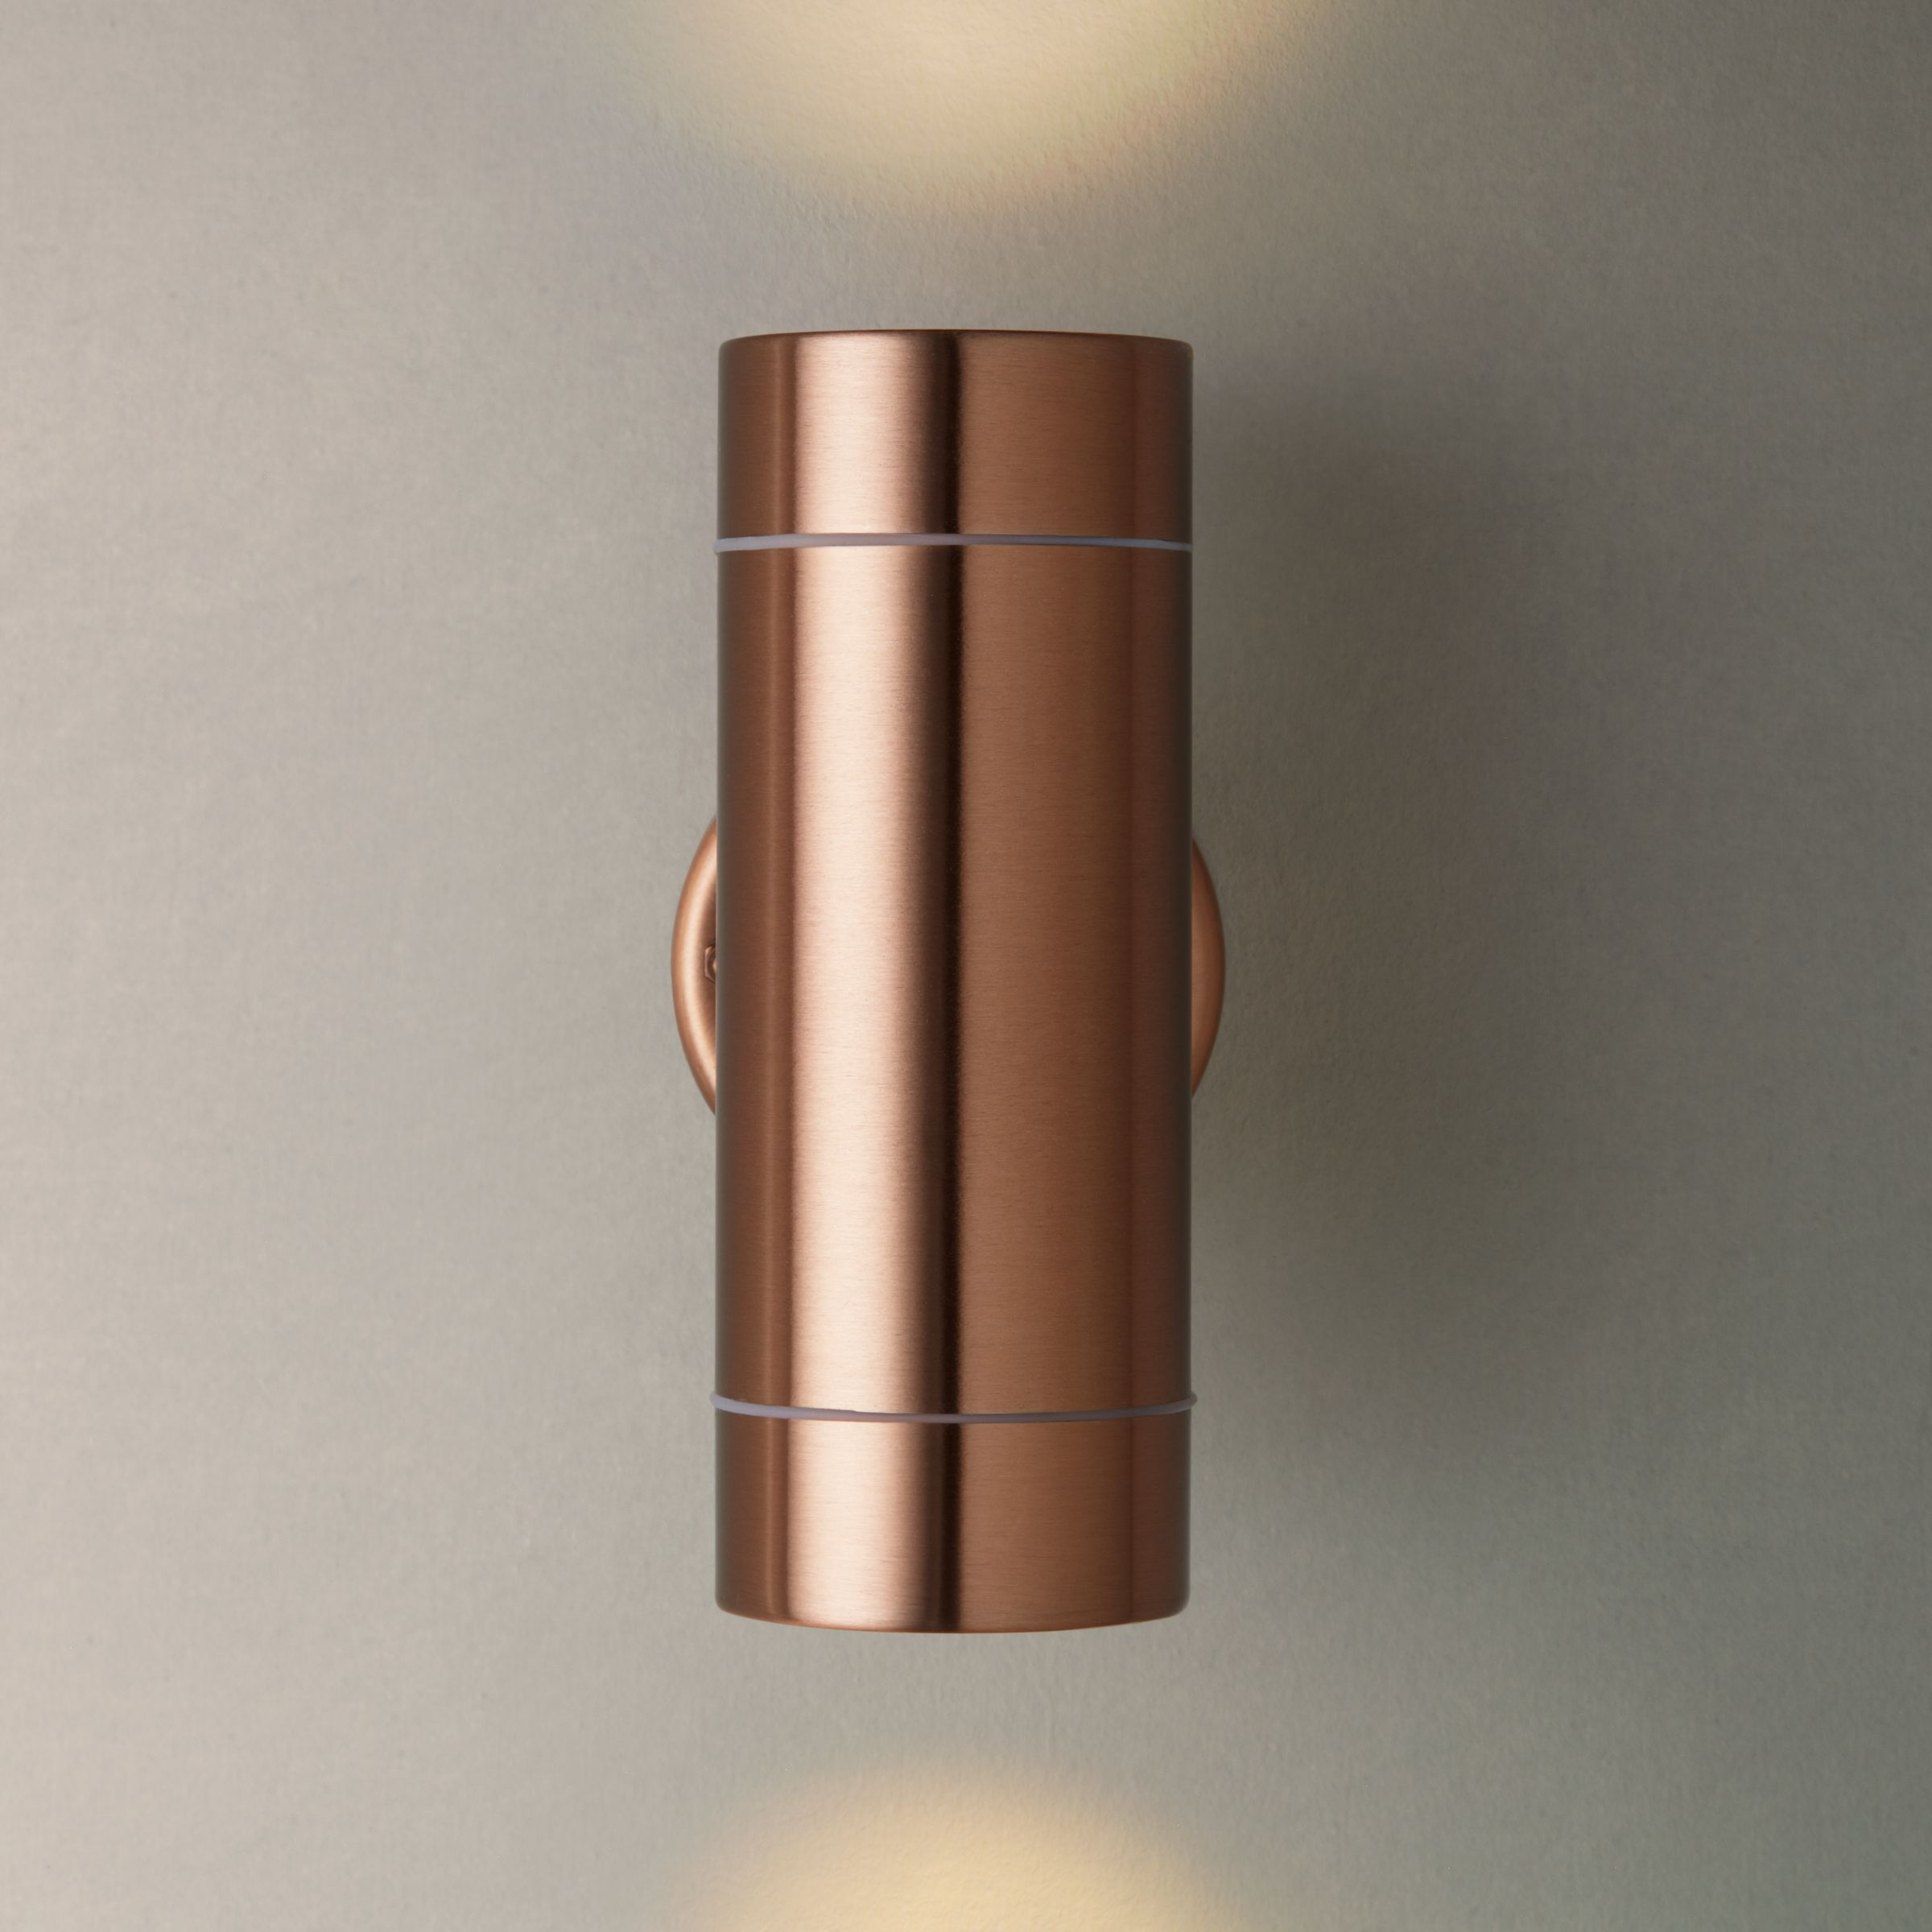 Buy John Lewis Sabrebeam Outdoor Double Wall Light, Copper John Lewis